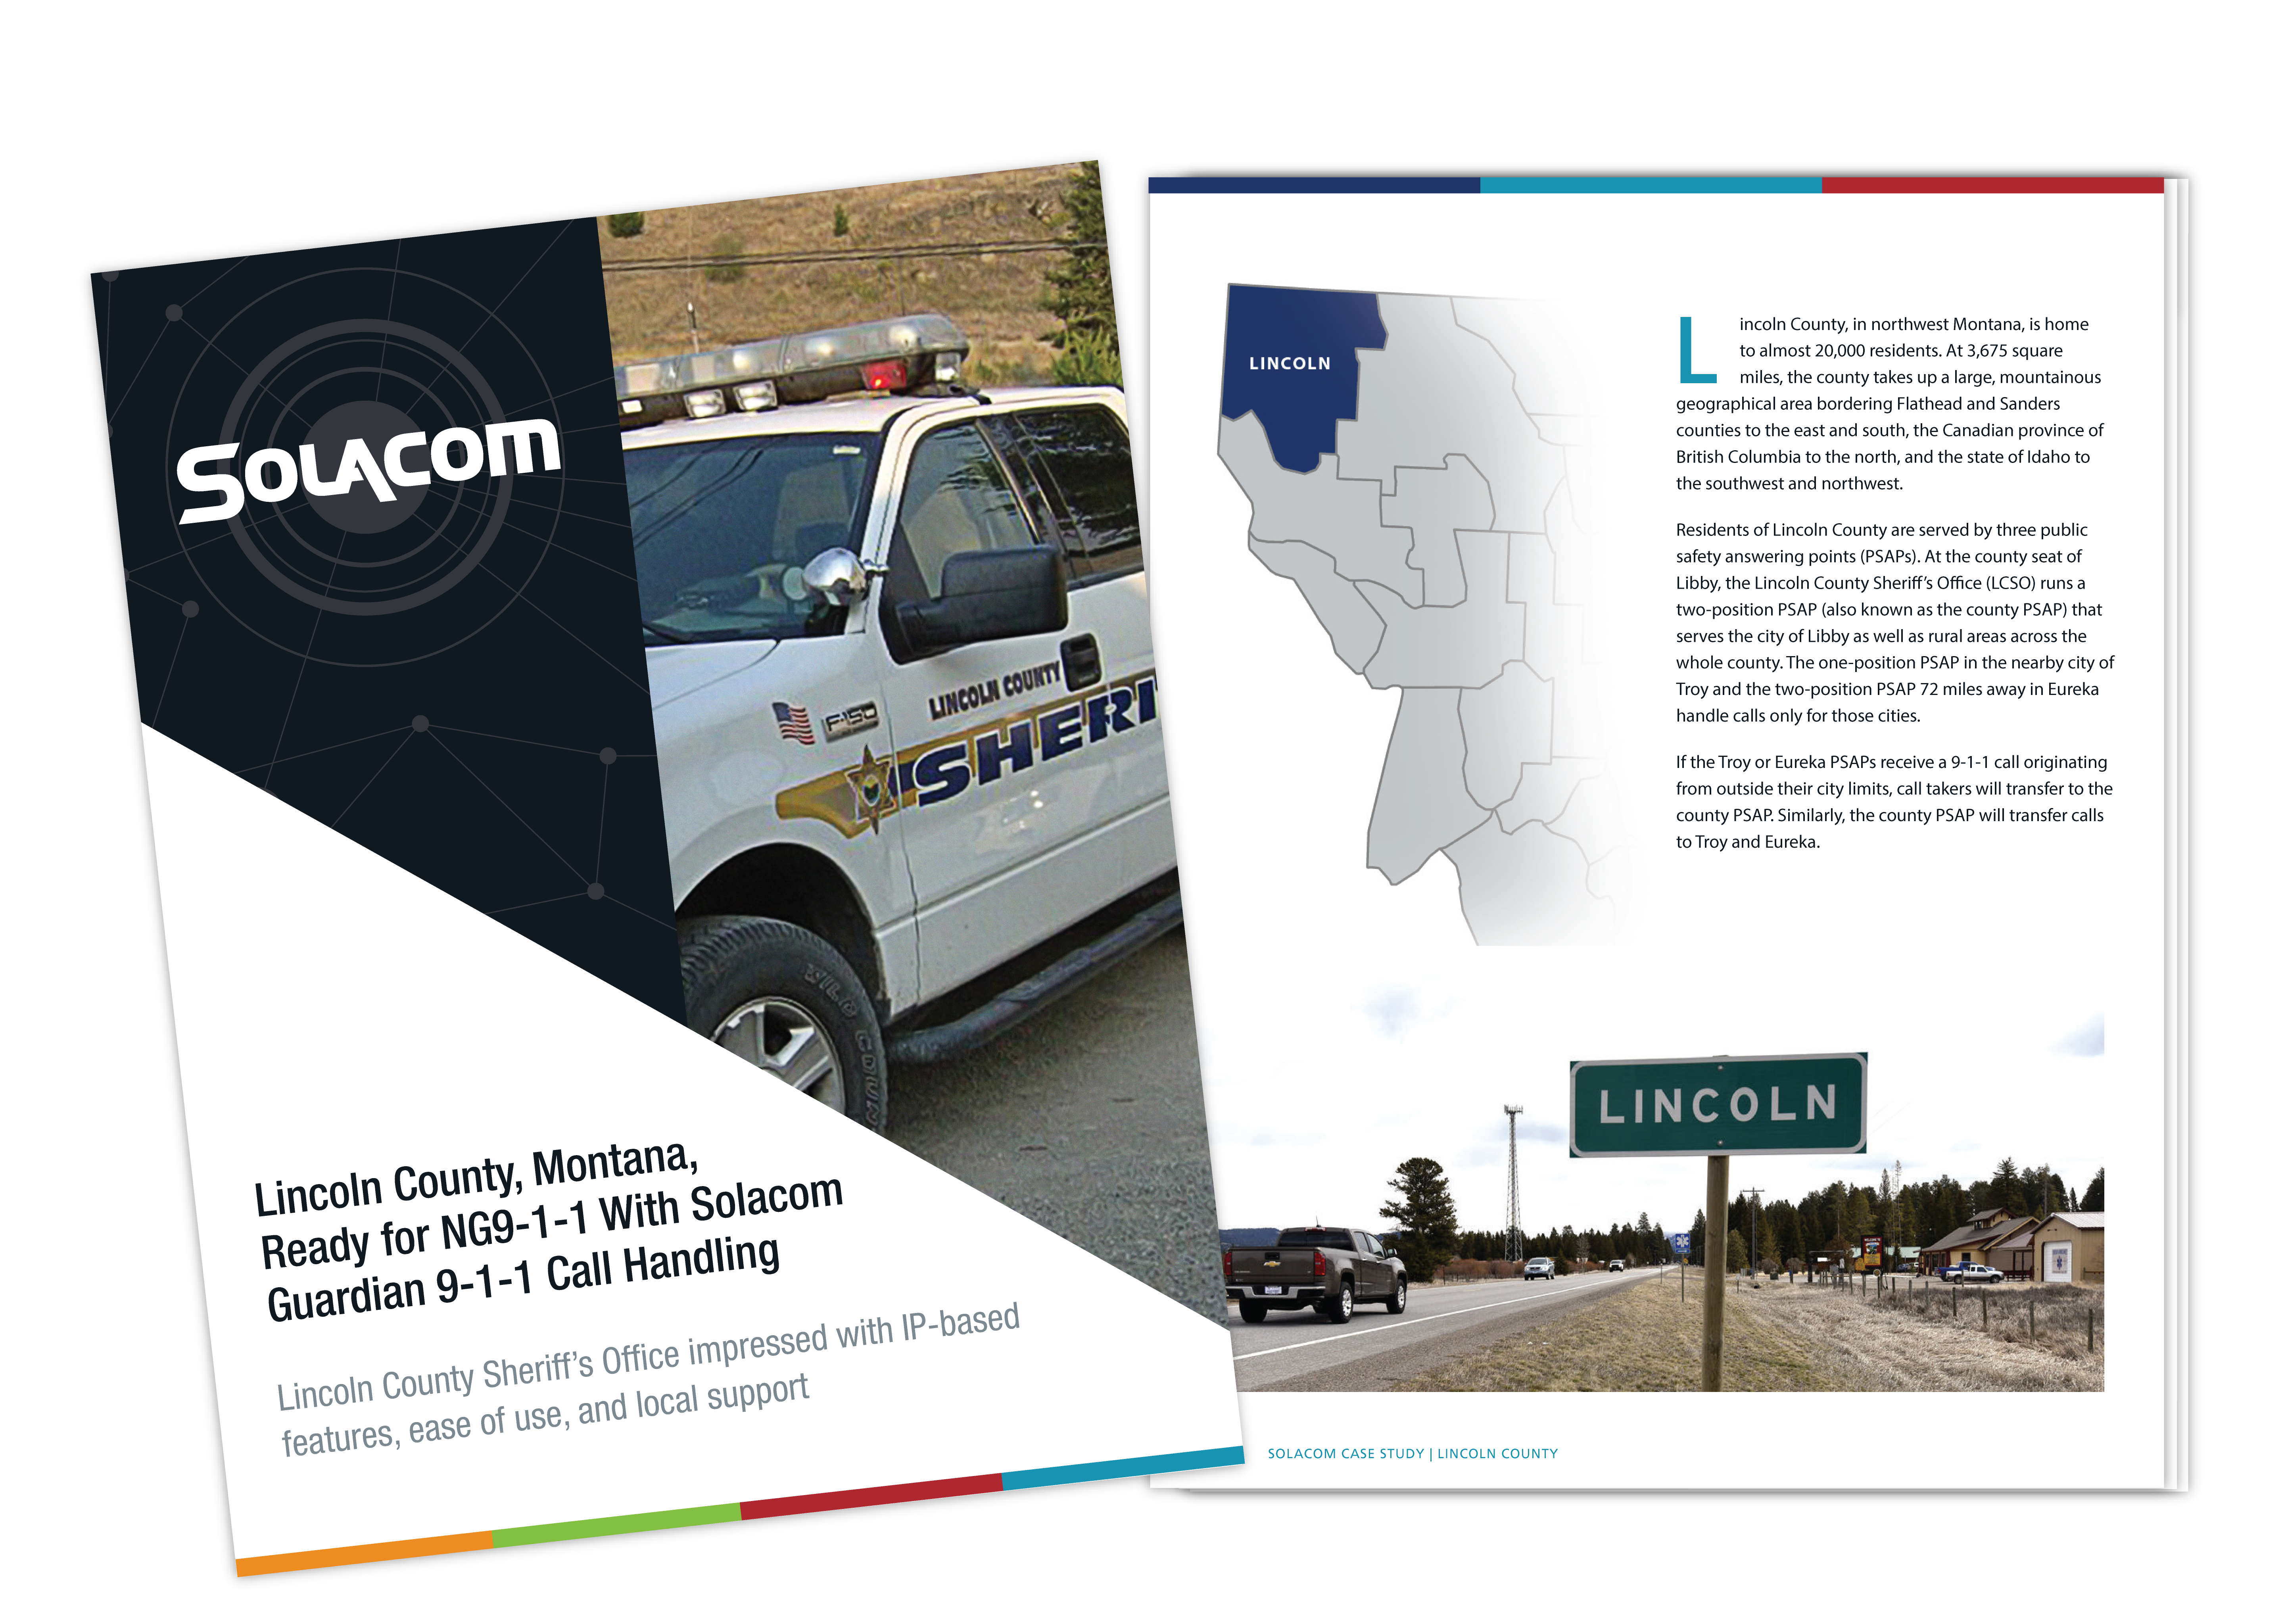 Lincoln County, Montana, Ready for NG9-1-1 With Solacom Guardian 9-1-1 Call Handling, a Solacom case study